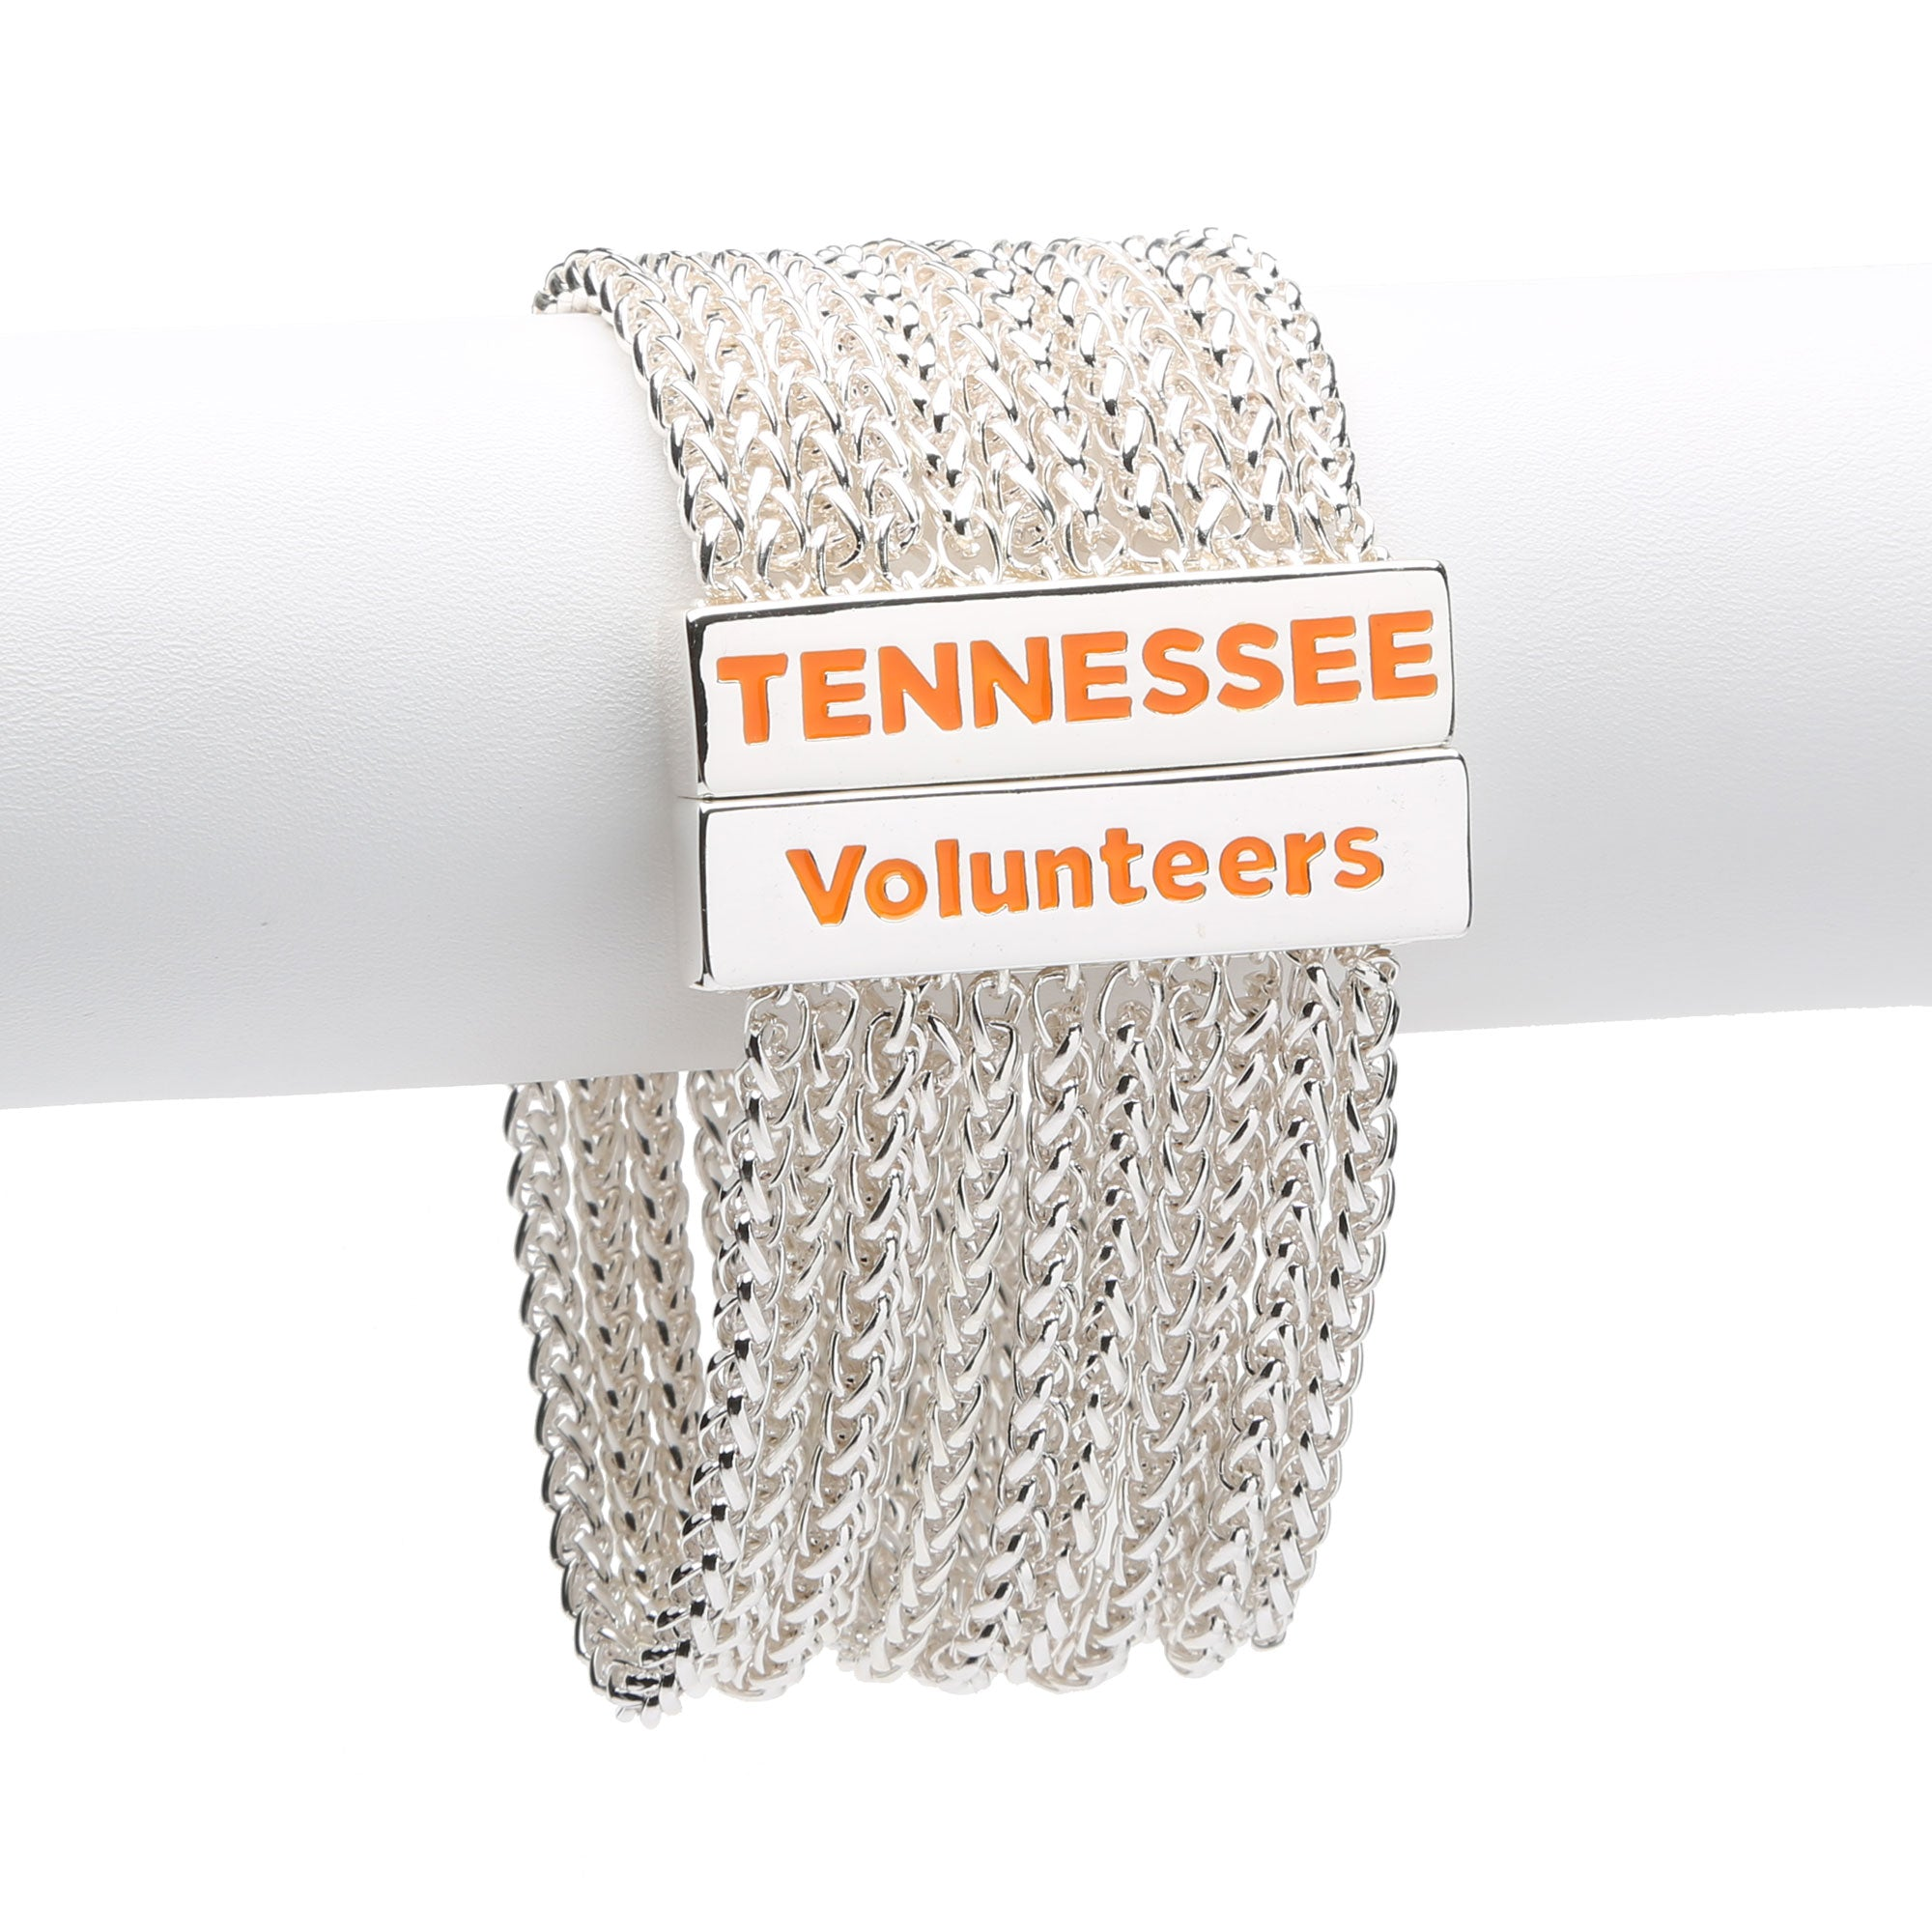 TENNESSEE VOLUNTEERS JOLIE BRACELET